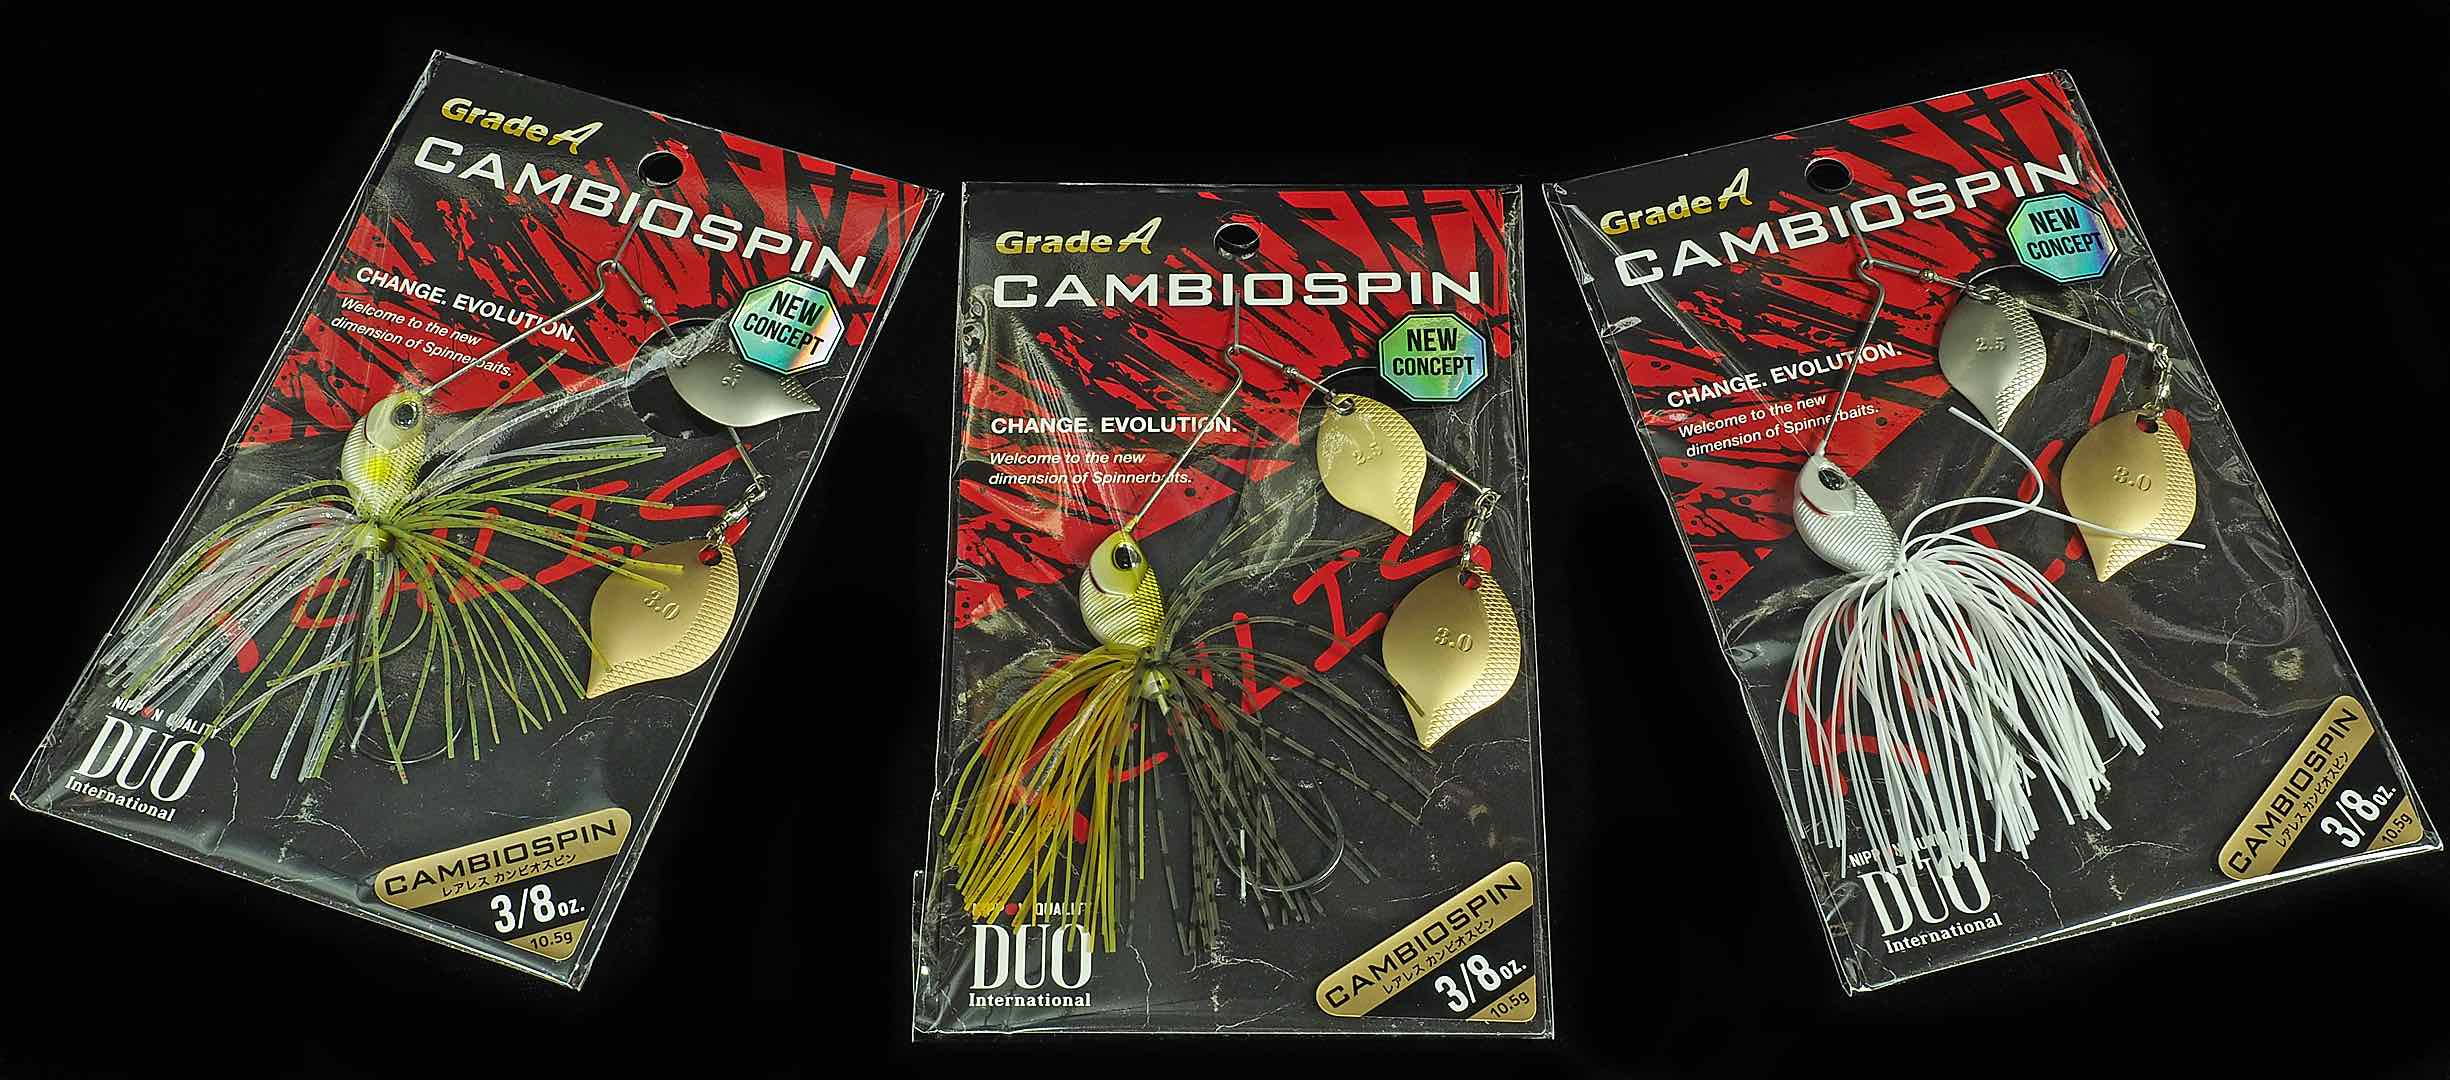 Duo Realis Cambio Spin Assortment.